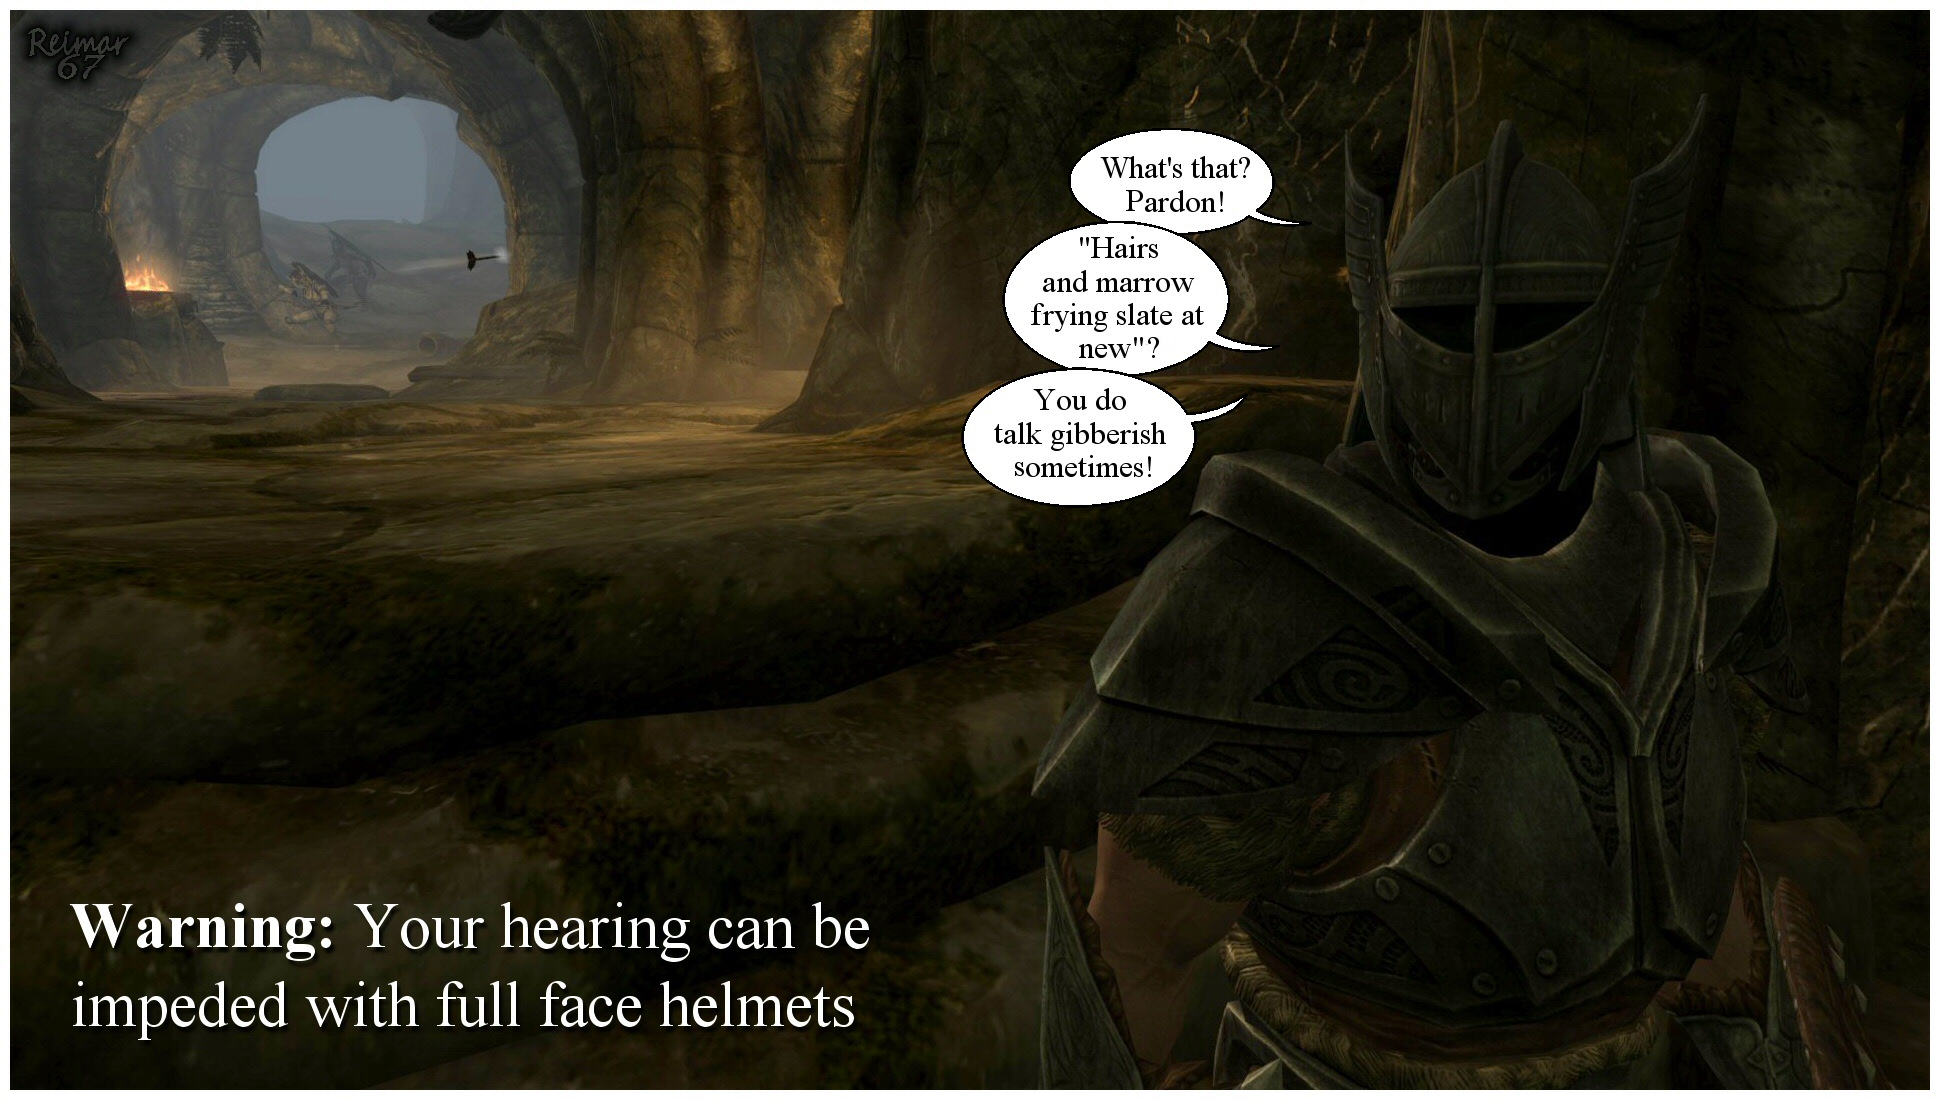 WARNING - Full Face Helmets